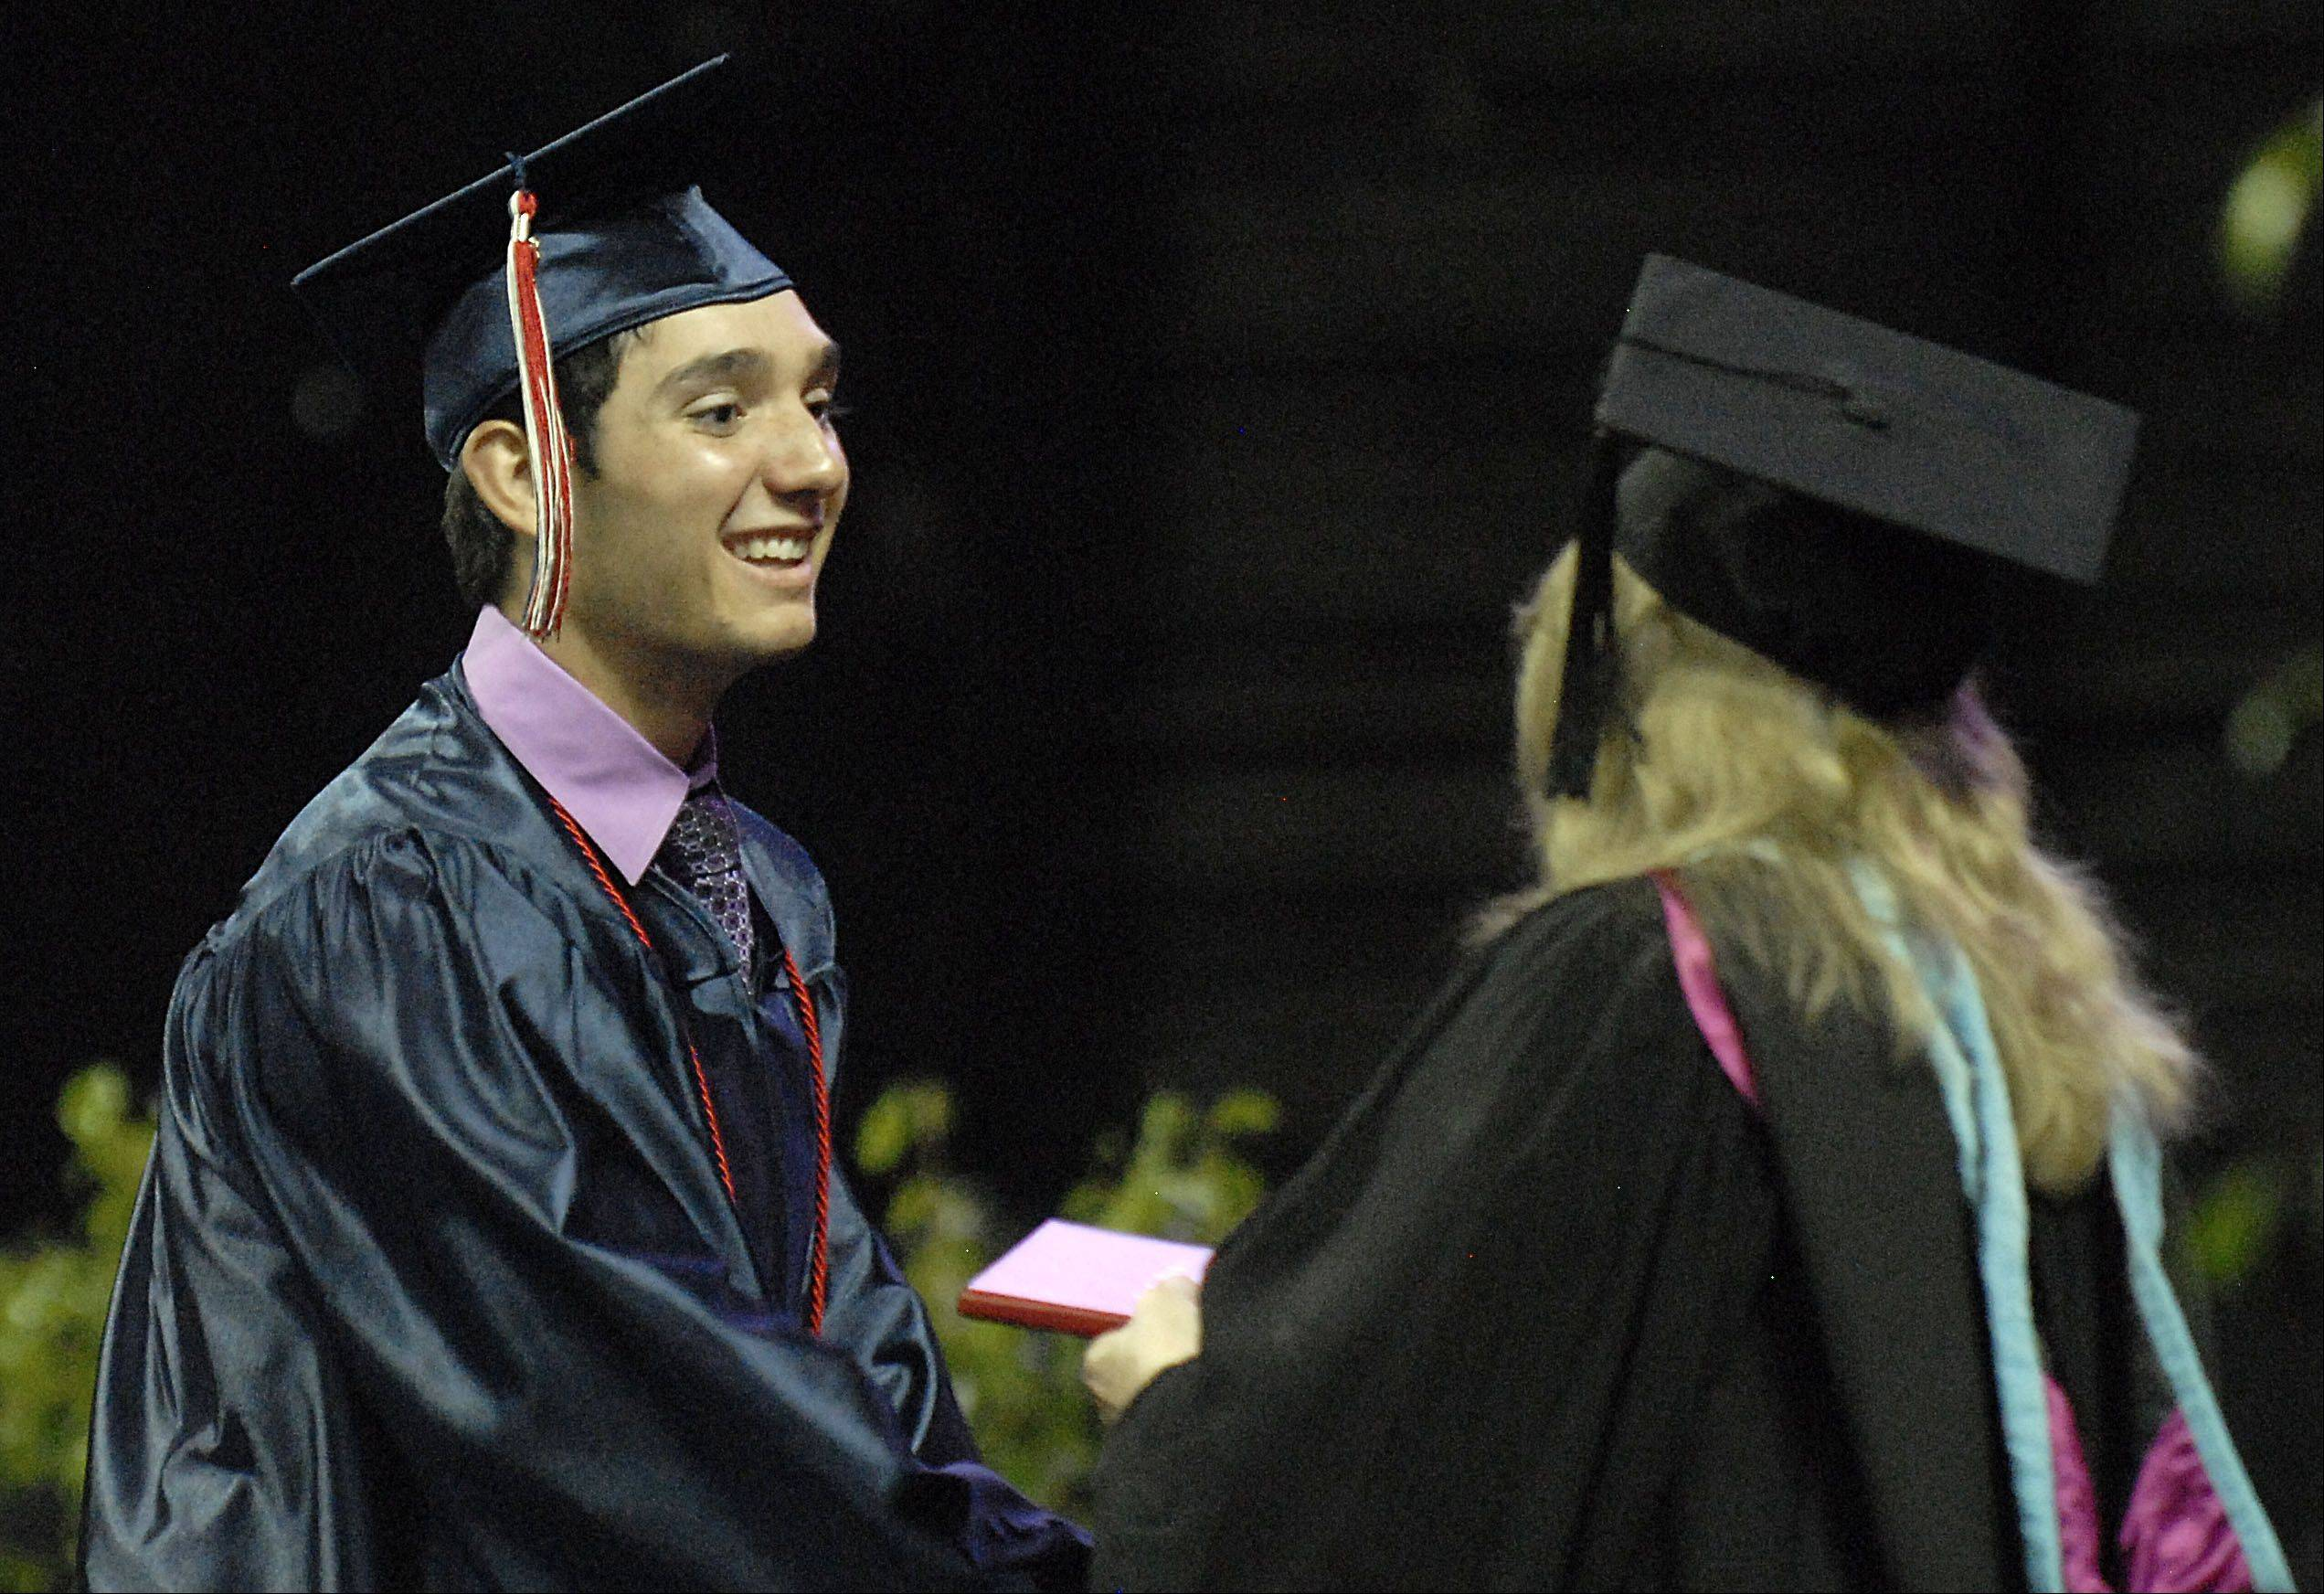 Images from the South Elgin High School graduation Saturday, May 26, 2012 at the Sears Centre in Hoffman Estates.